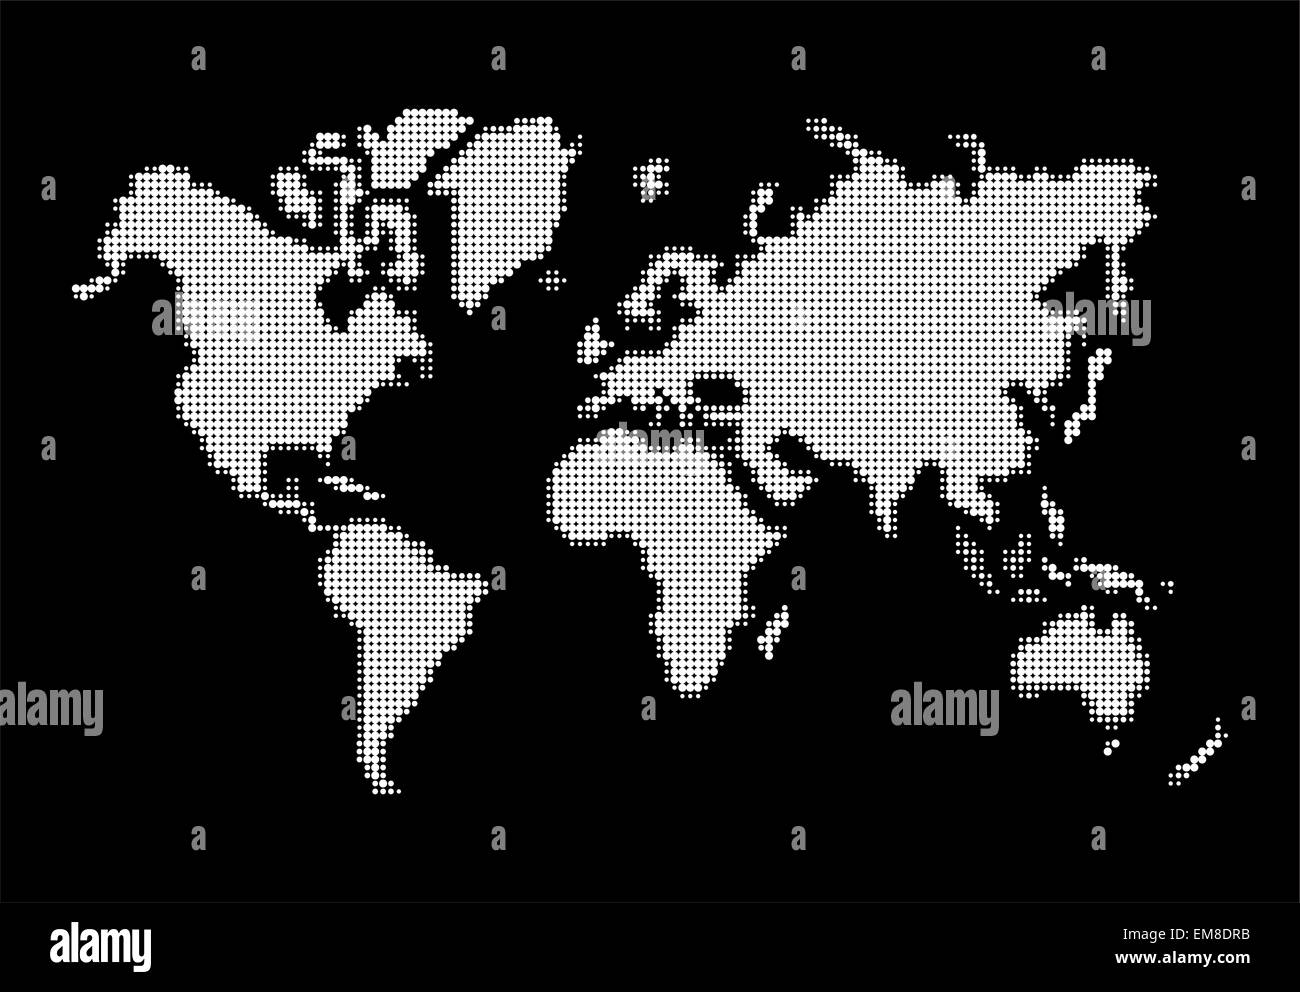 World map, white dots atlas composition EPS10 vector file. - Stock Image